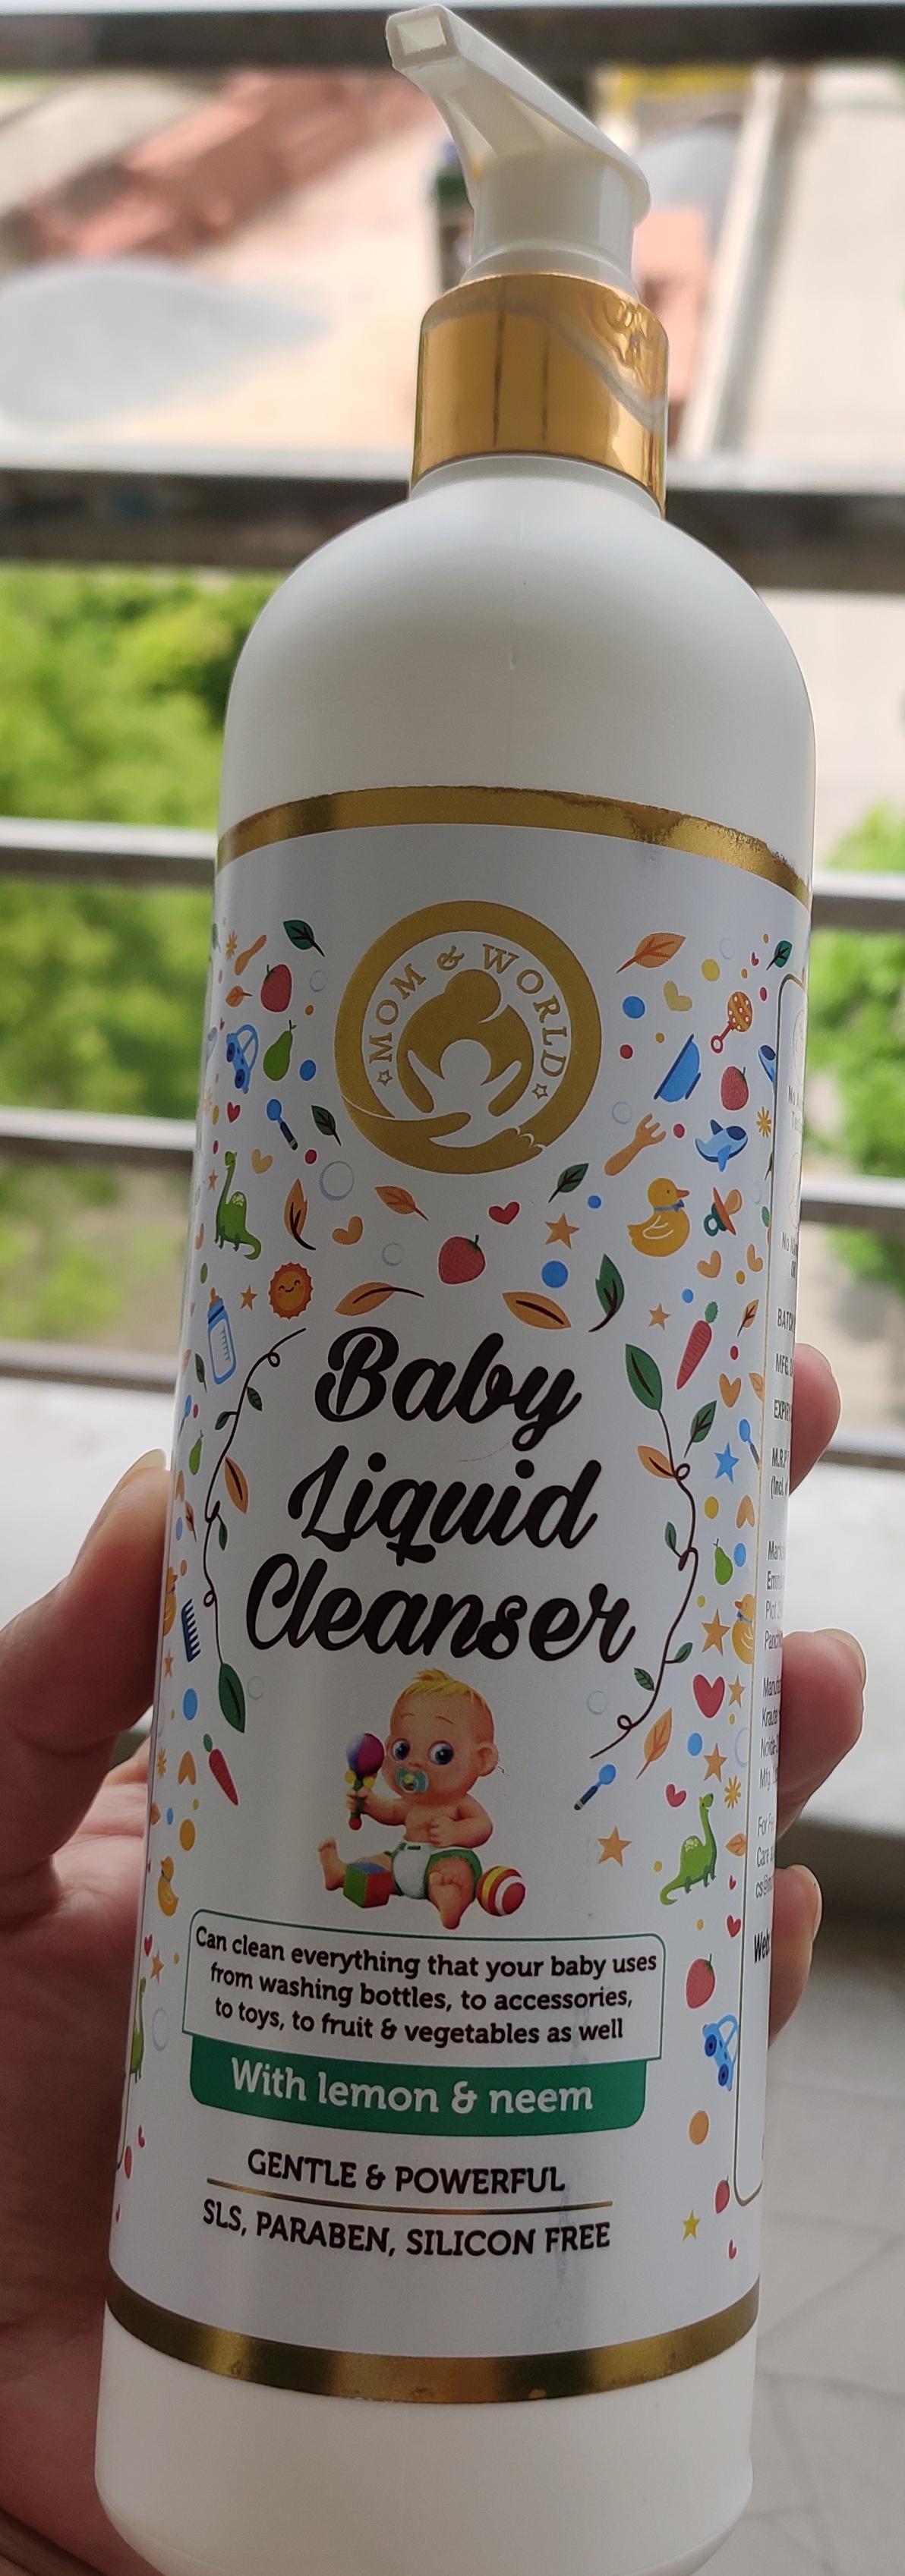 Mom & World Baby Anti Bacterial Liquid Cleanser-Great cleanser, highly recommended-By deeksha_tripathi